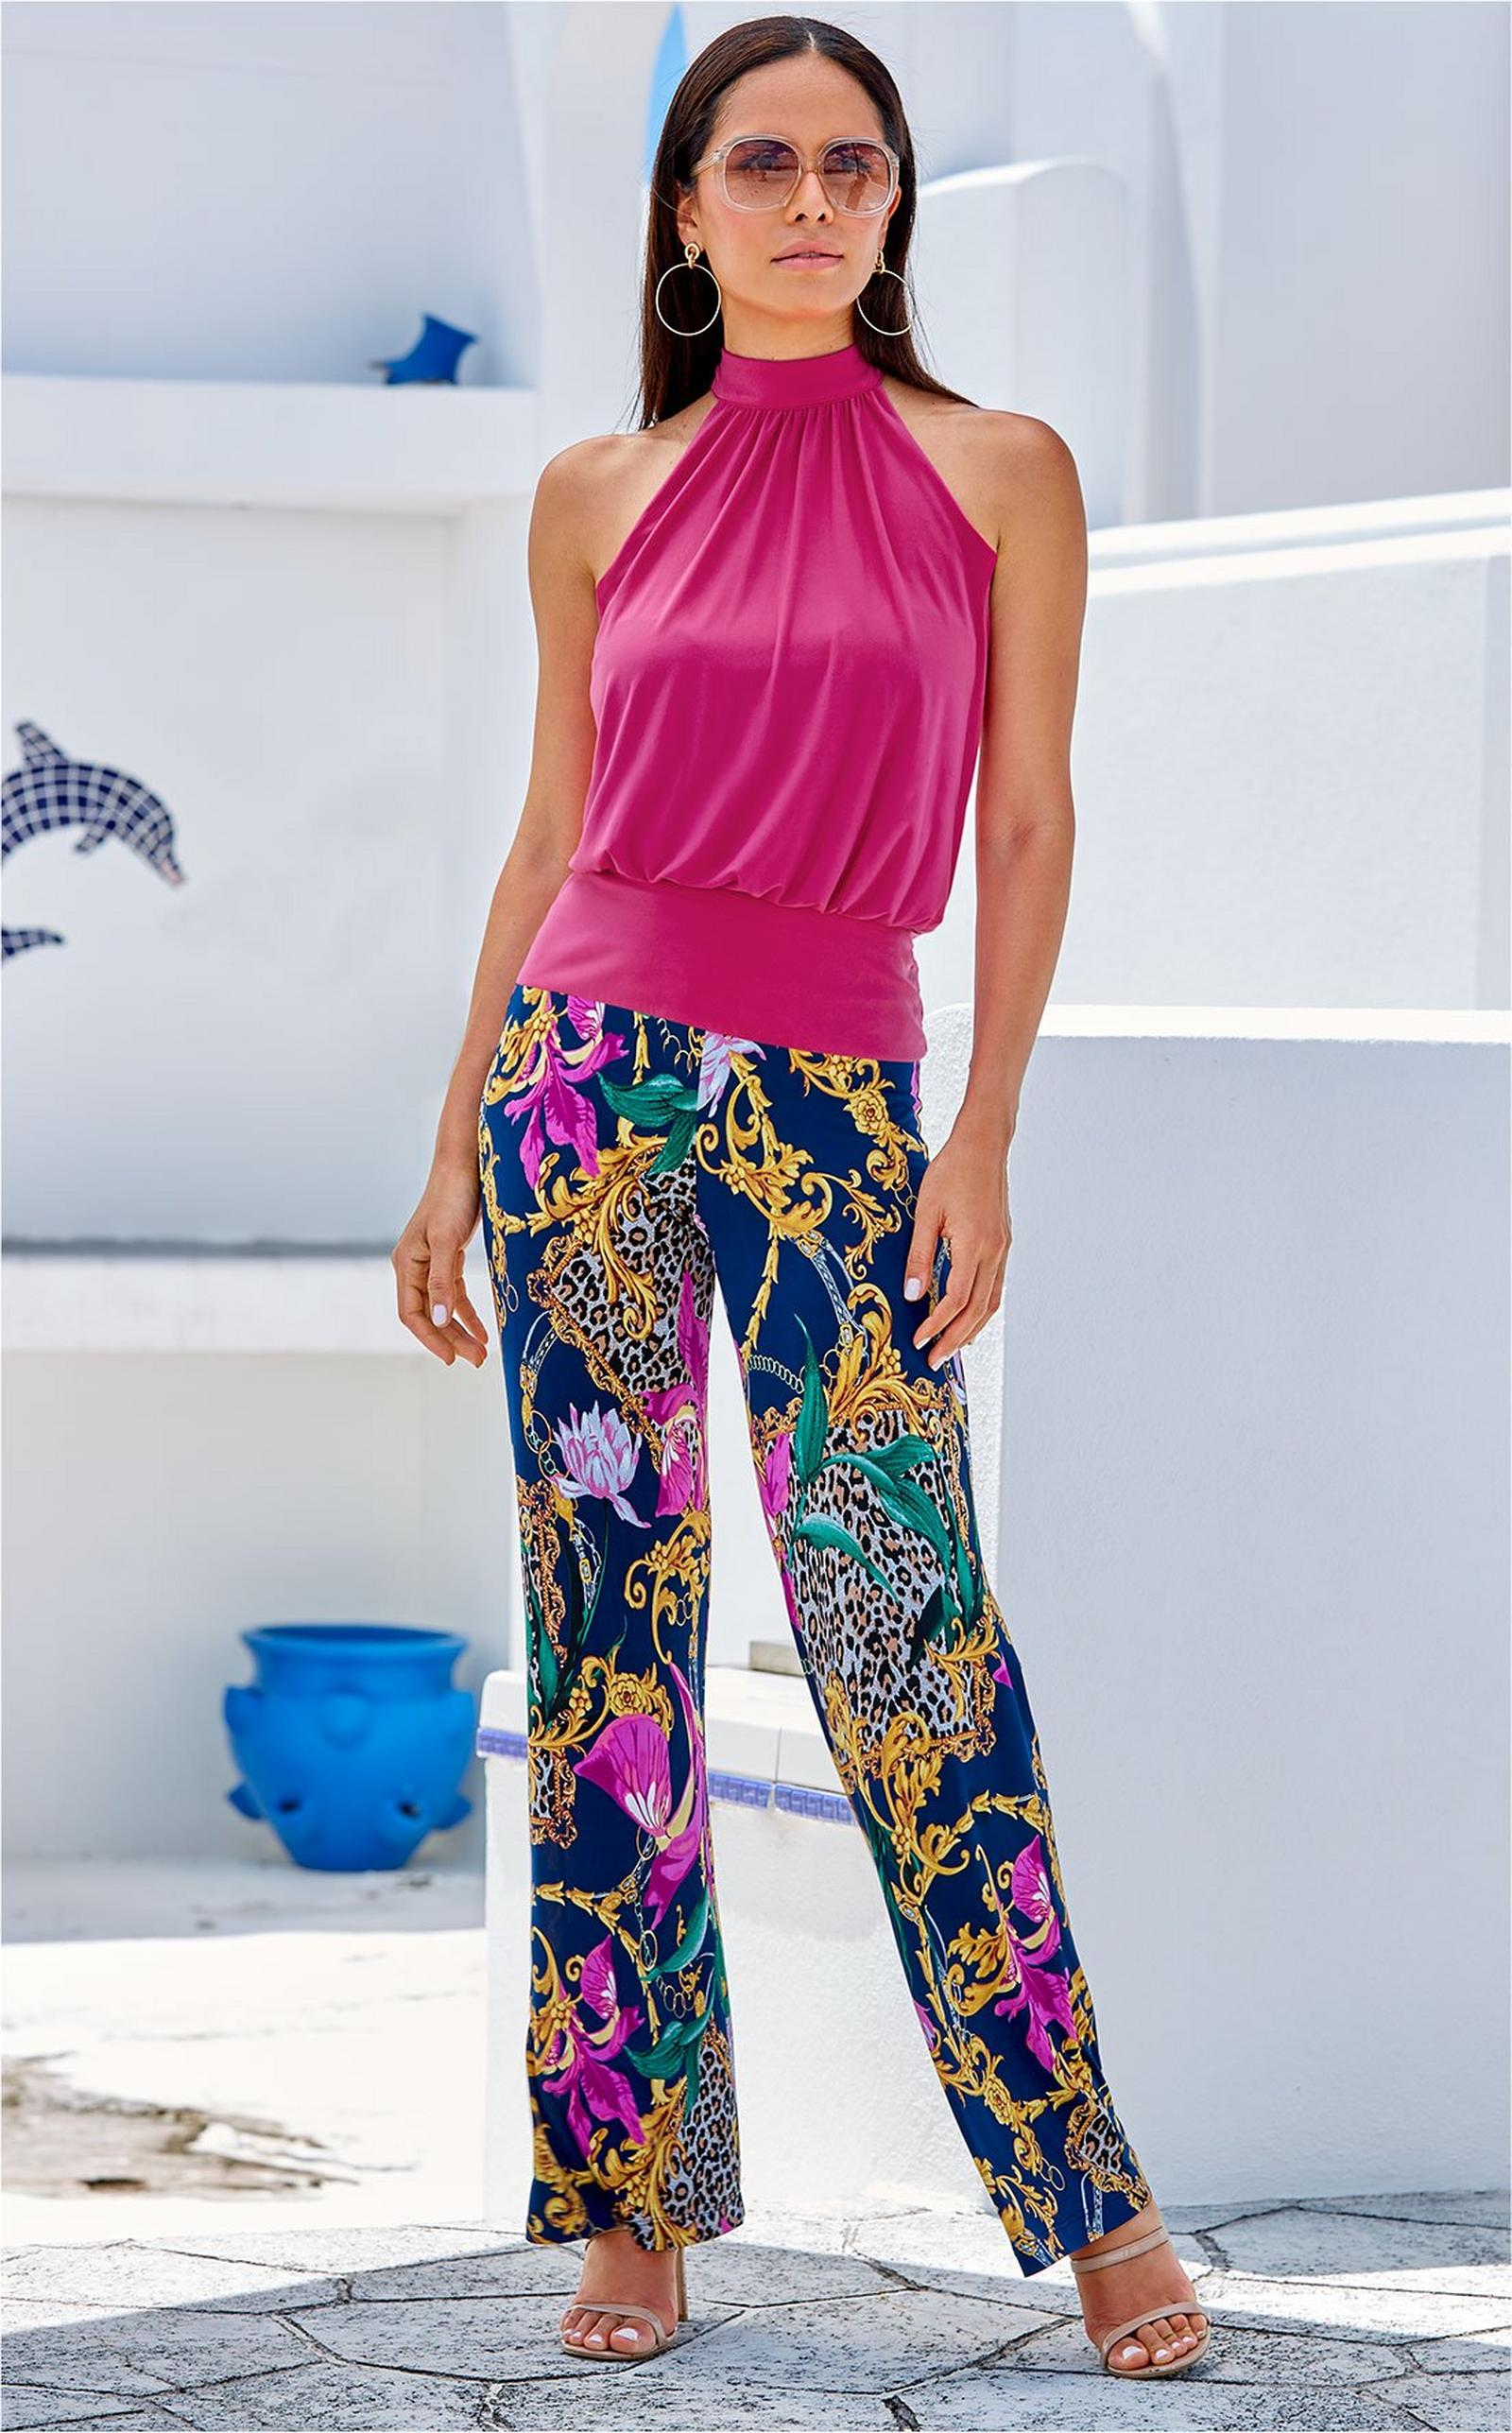 model wearing a mock-neck pink top and scroll animal print pants with sunglasses.